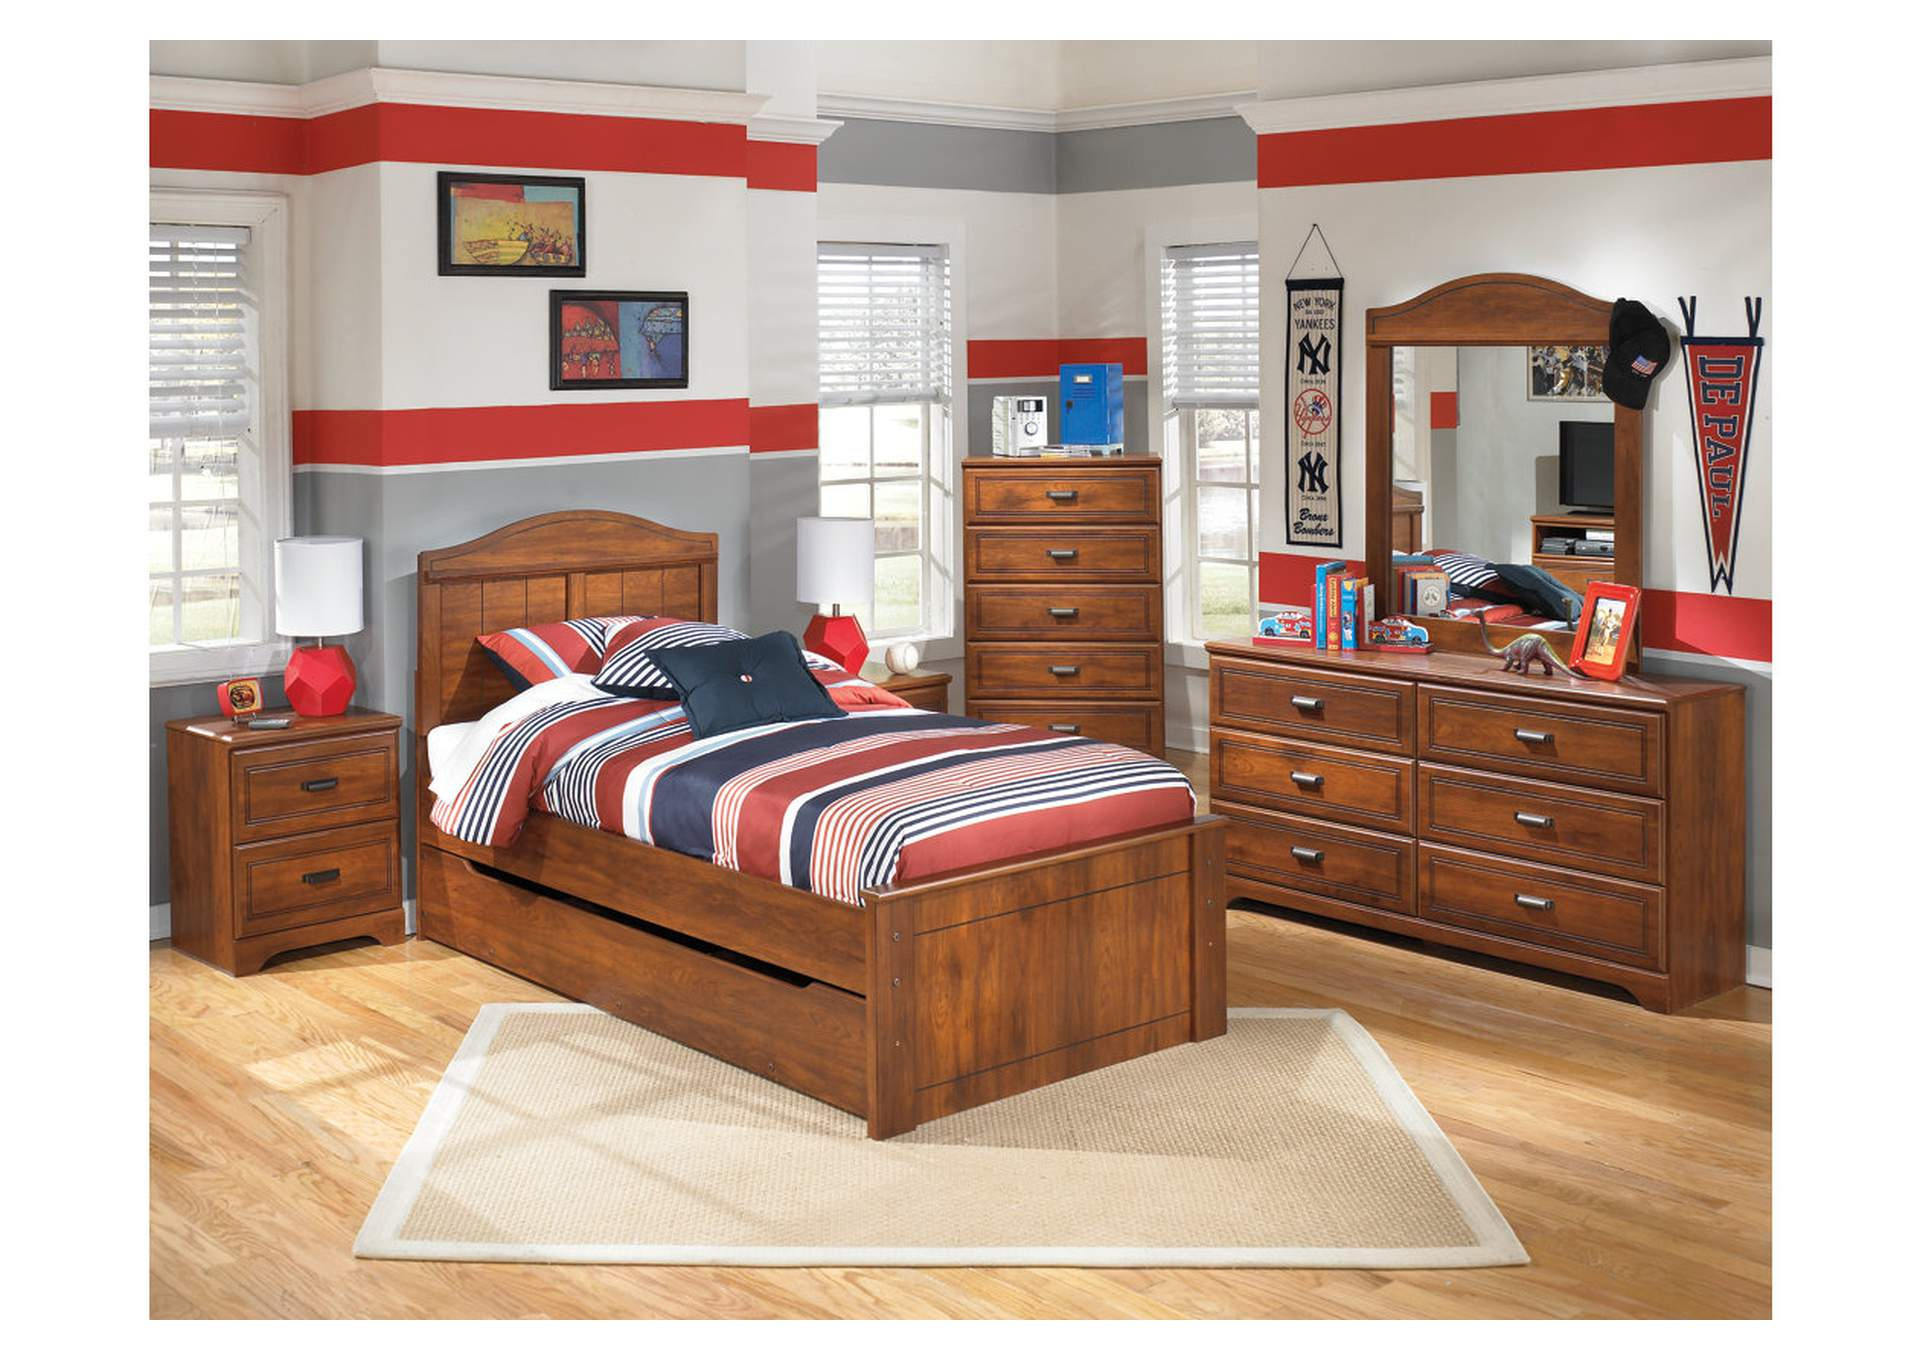 Barchan Twin Panel Bed w/ Trundle, Dresser & Mirror,Signature Design By Ashley